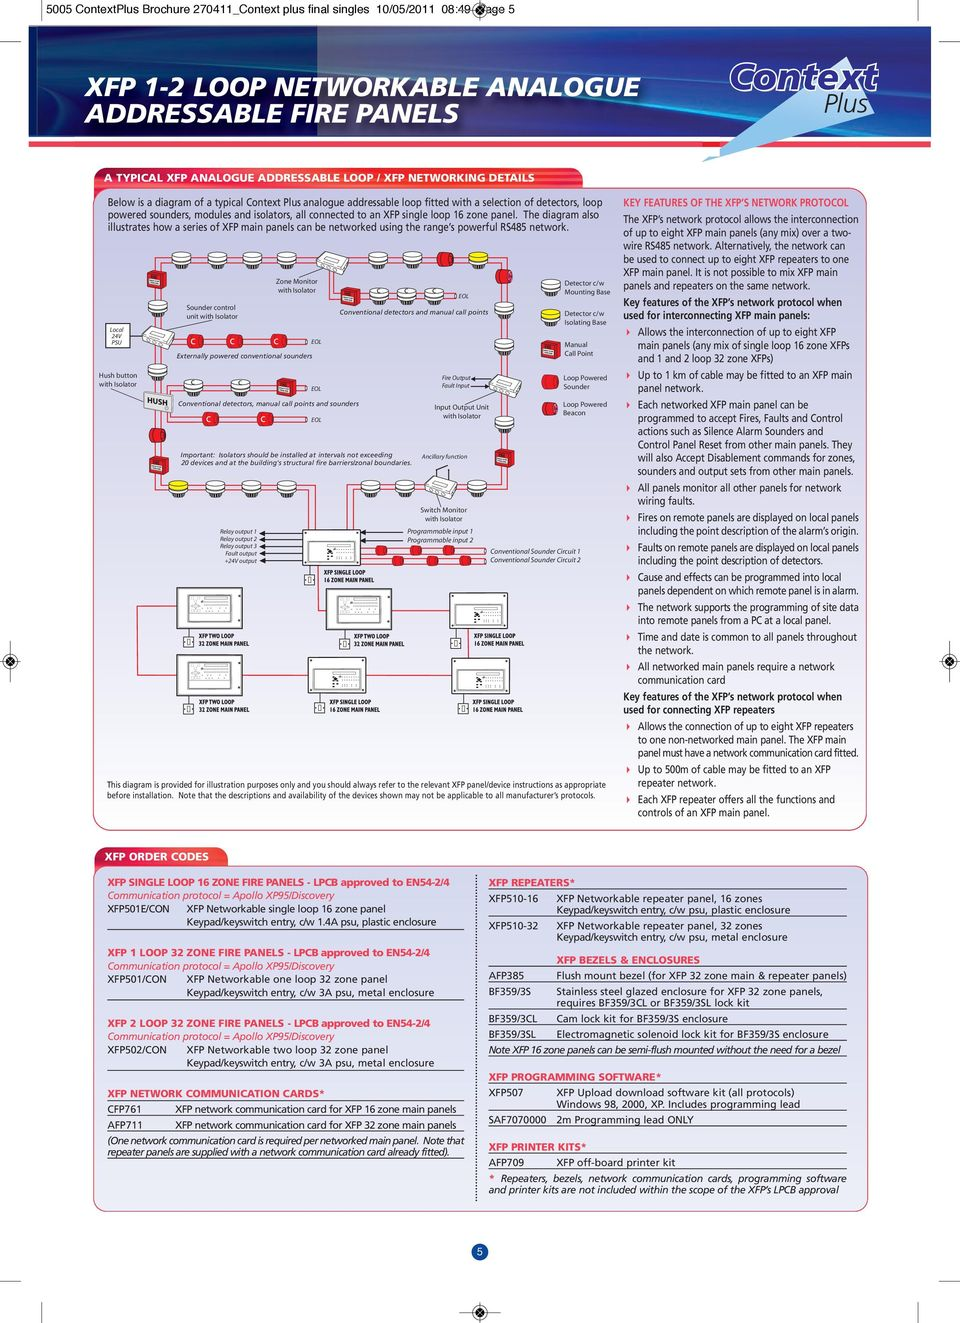 Context Plus Fire Catalogue Analogue Addressable Apollo Smoke Detector Wiring Diagram The Also Illustrates How A Series Of Xfp Main Panels Can Be Networked Using